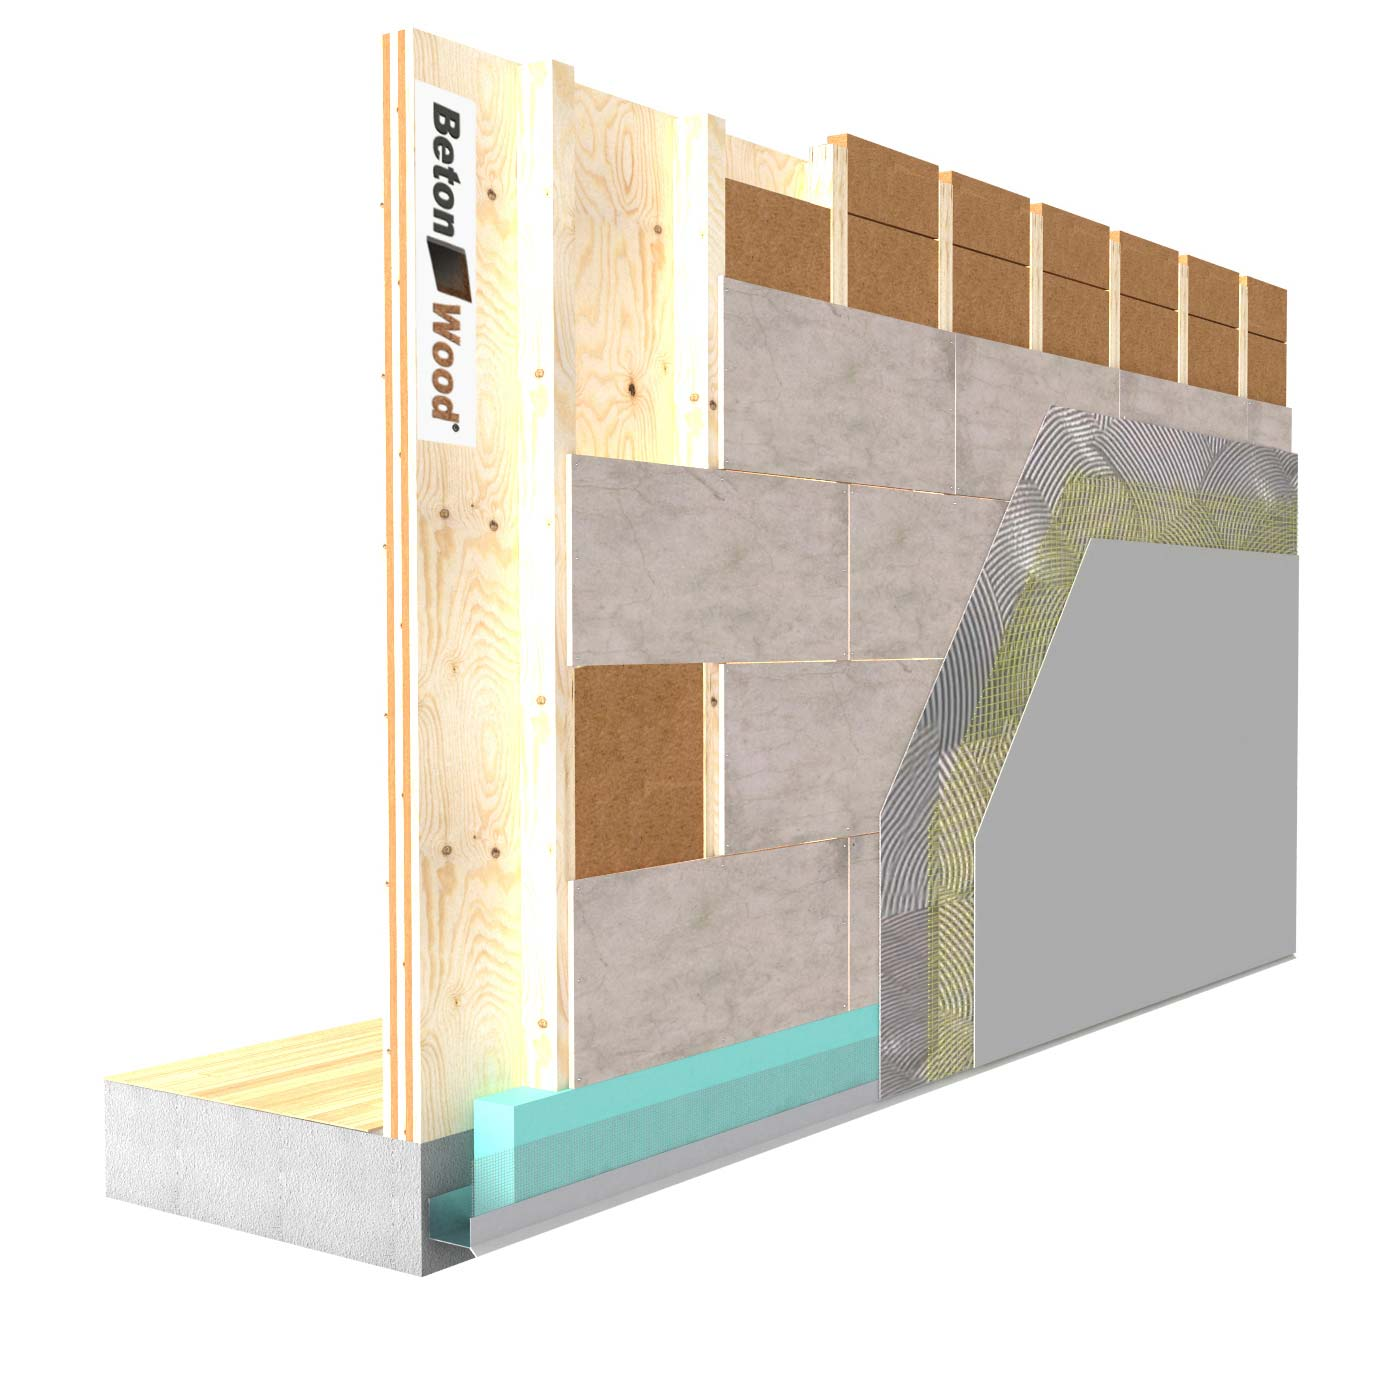 External insulation system with Protect wood fiber on wooden walls